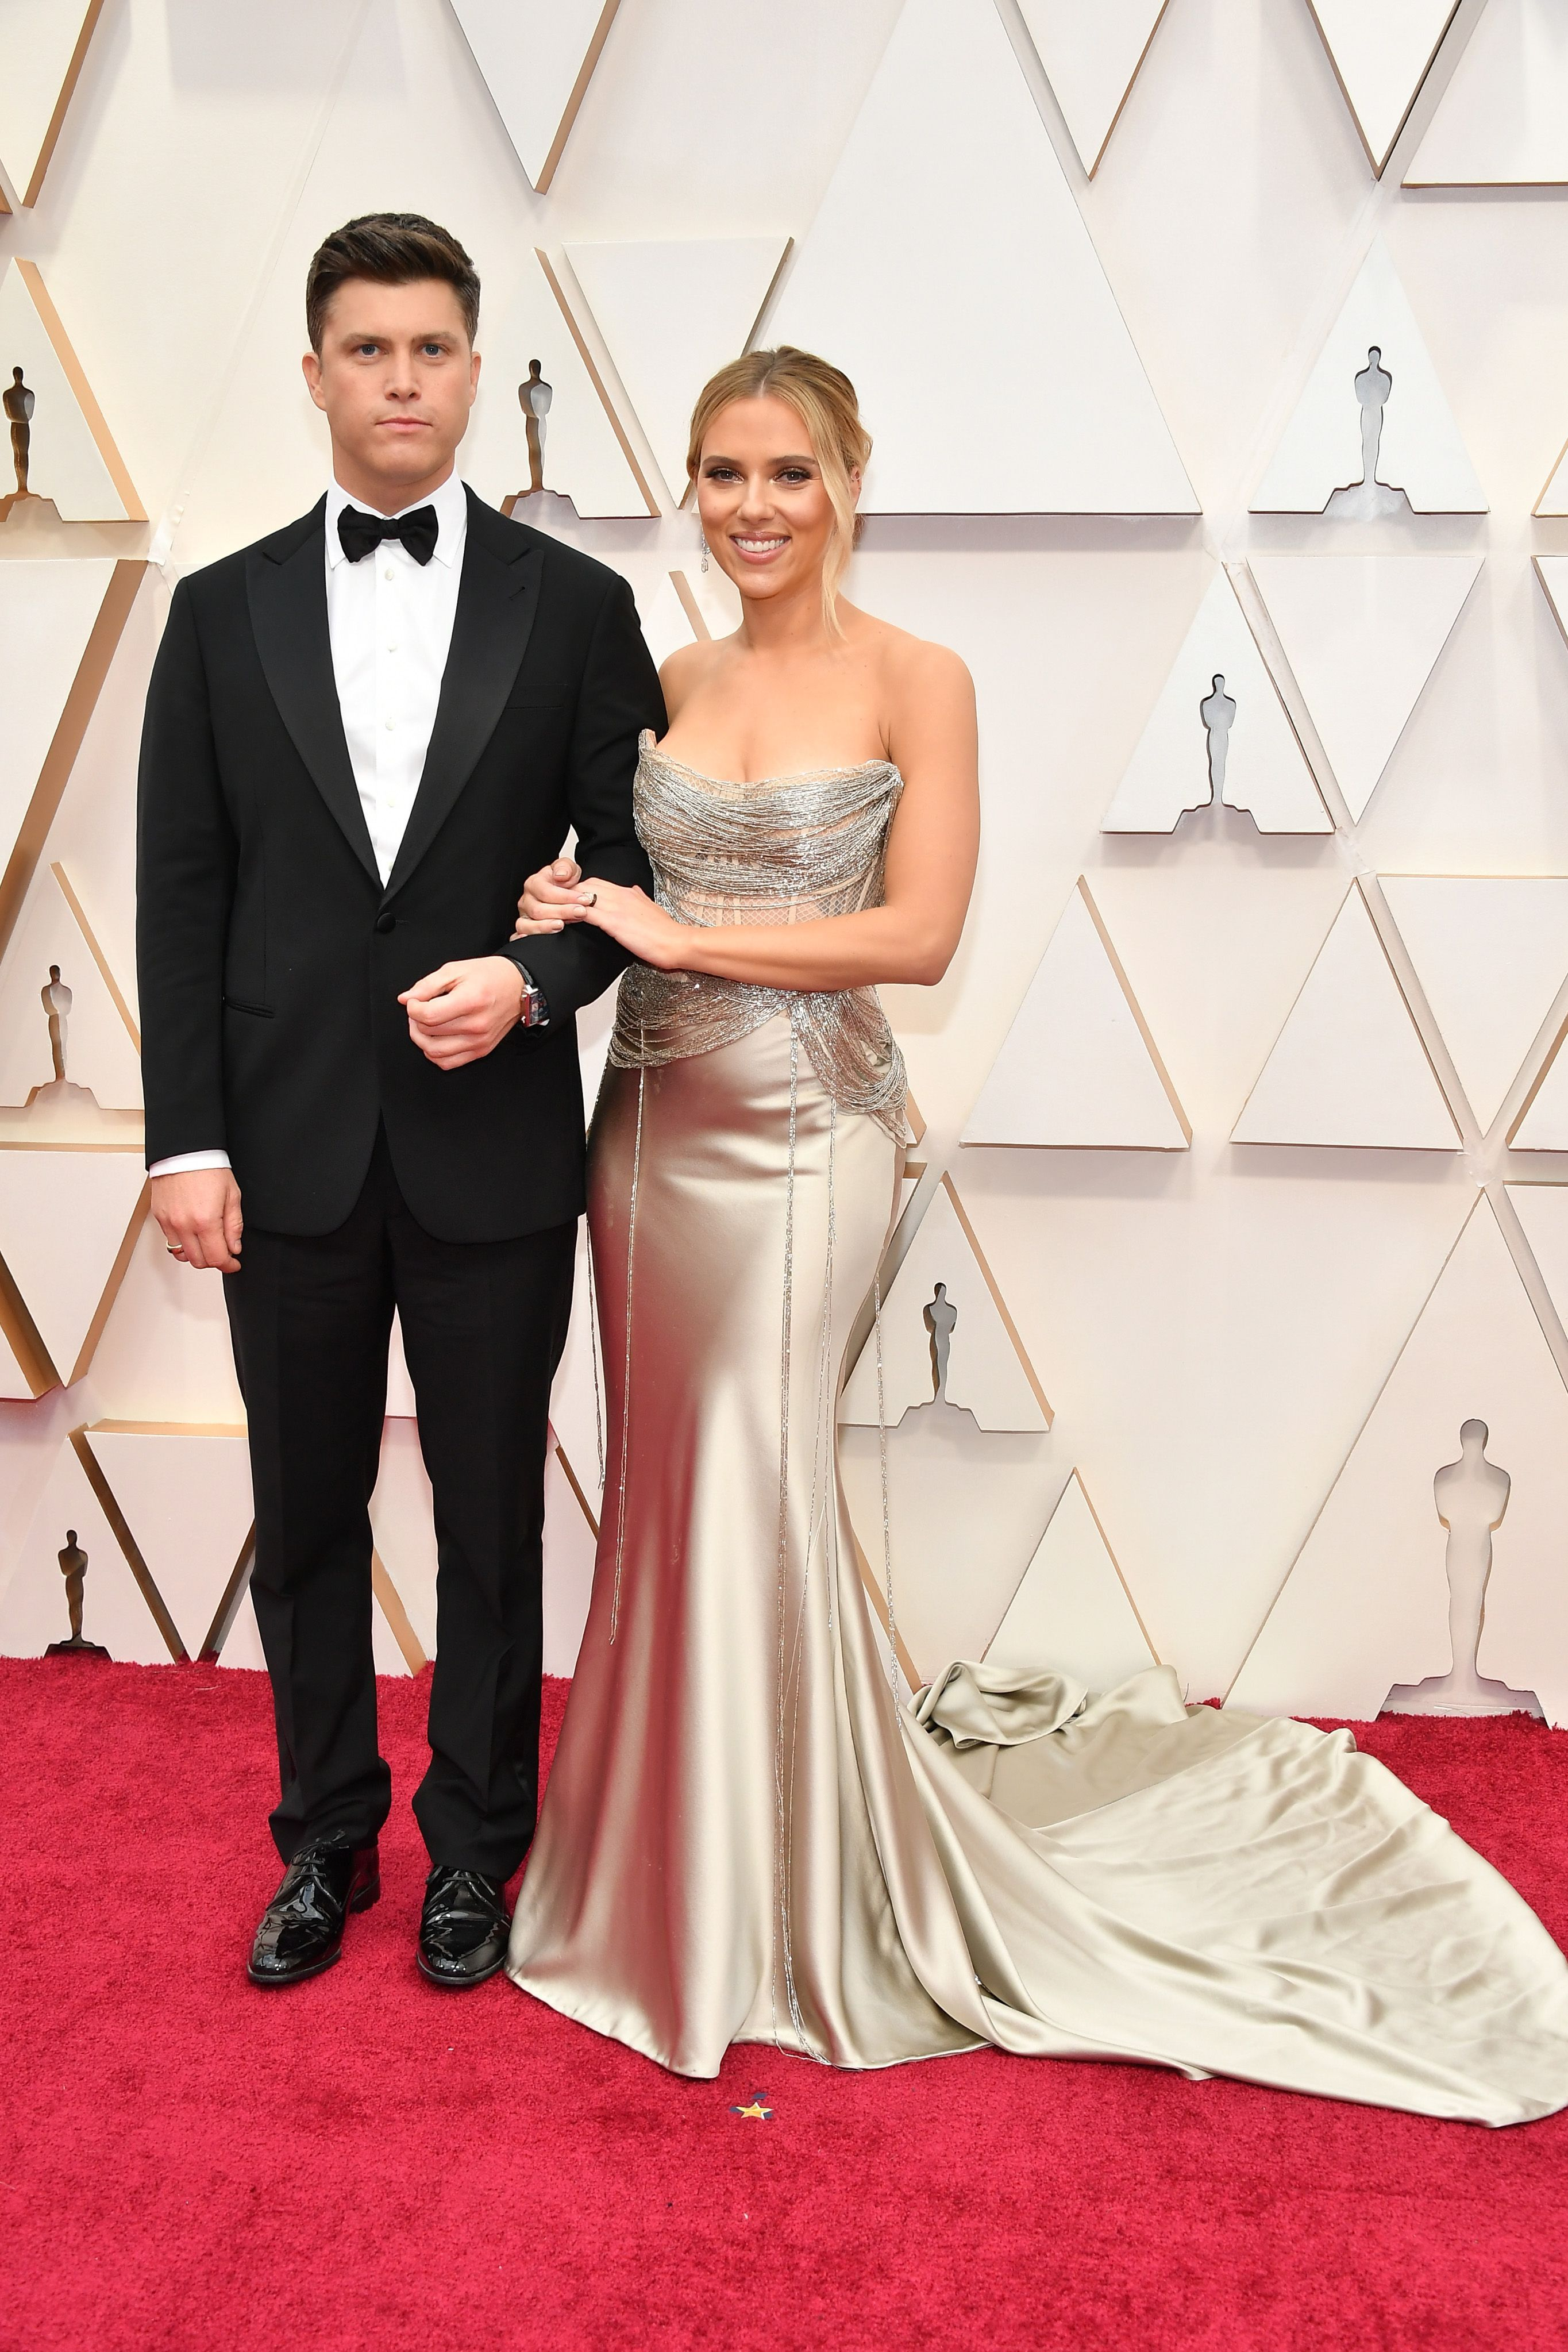 HOLLYWOOD, CALIFORNIA - FEBRUARY 09: (L-R) Colin Jost and  Scarlett Johansson attend the 92nd Annual Academy Awards at Hollywood and Highland on February 09, 2020 in Hollywood, California. (Photo by Amy Sussman/Getty Images)